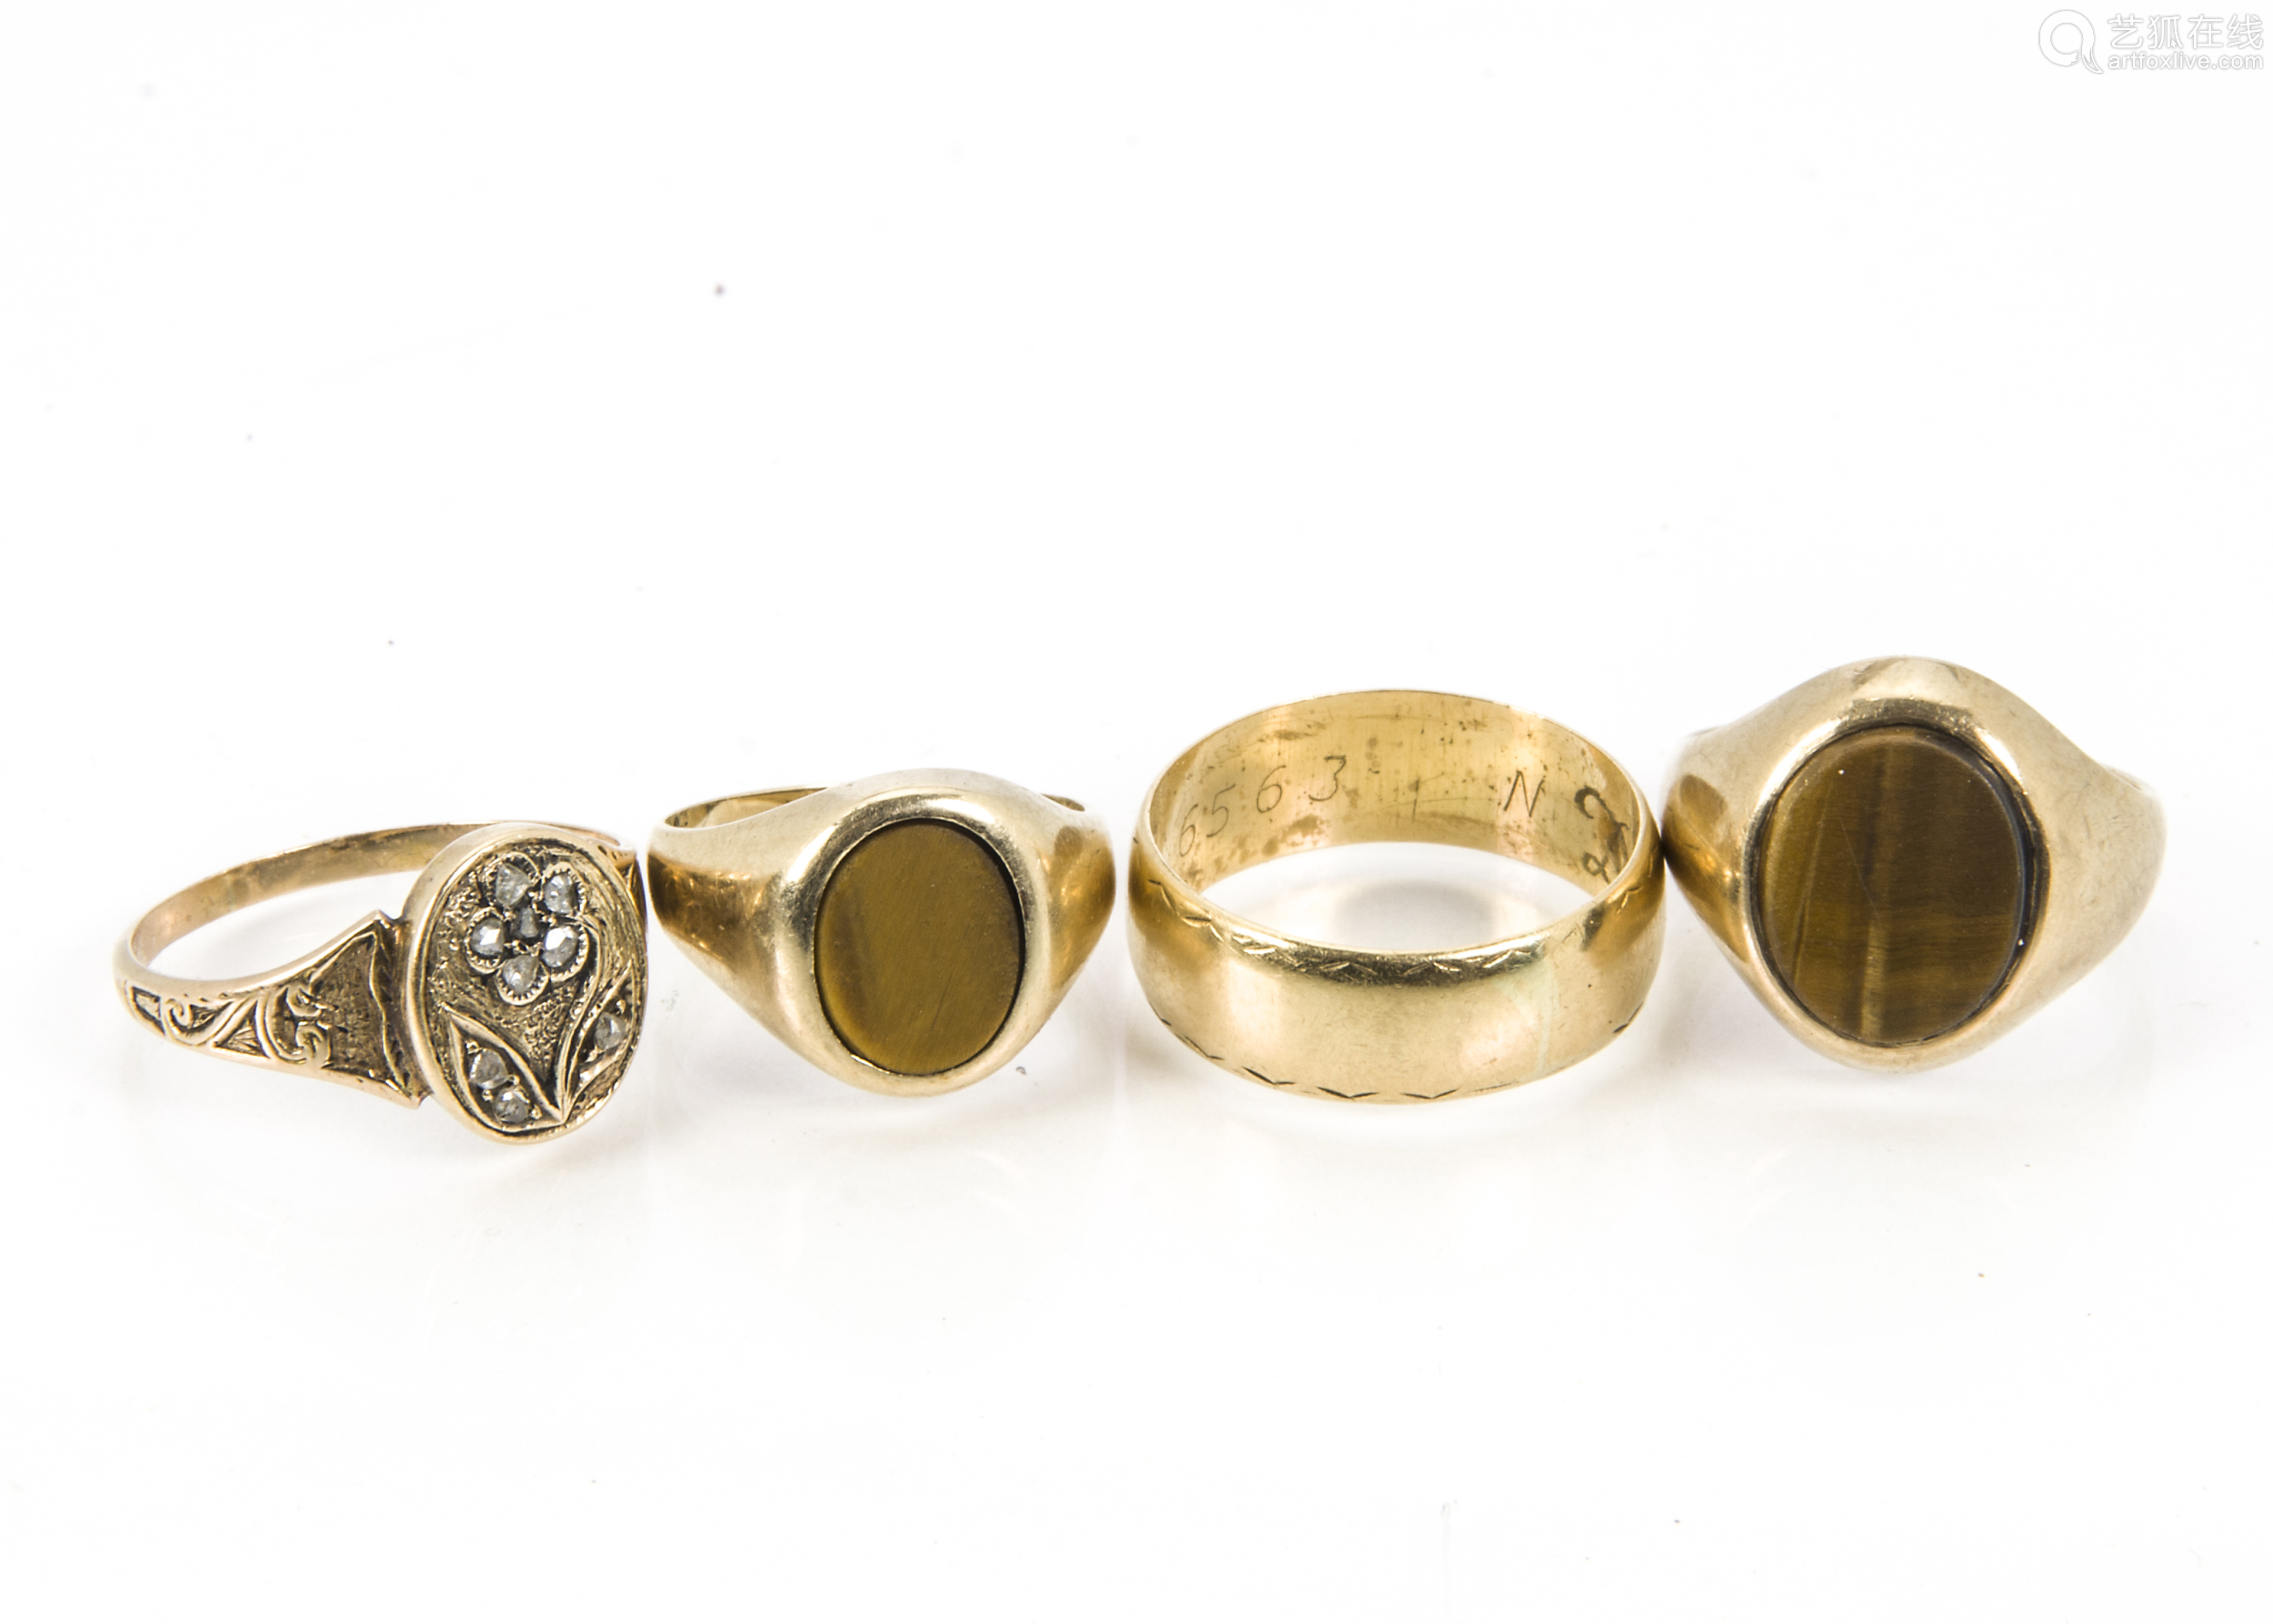 An 18ct gold wedding band, 5.2g, together with a gold and diamond signet ring, 2.3g and two 9ct gold